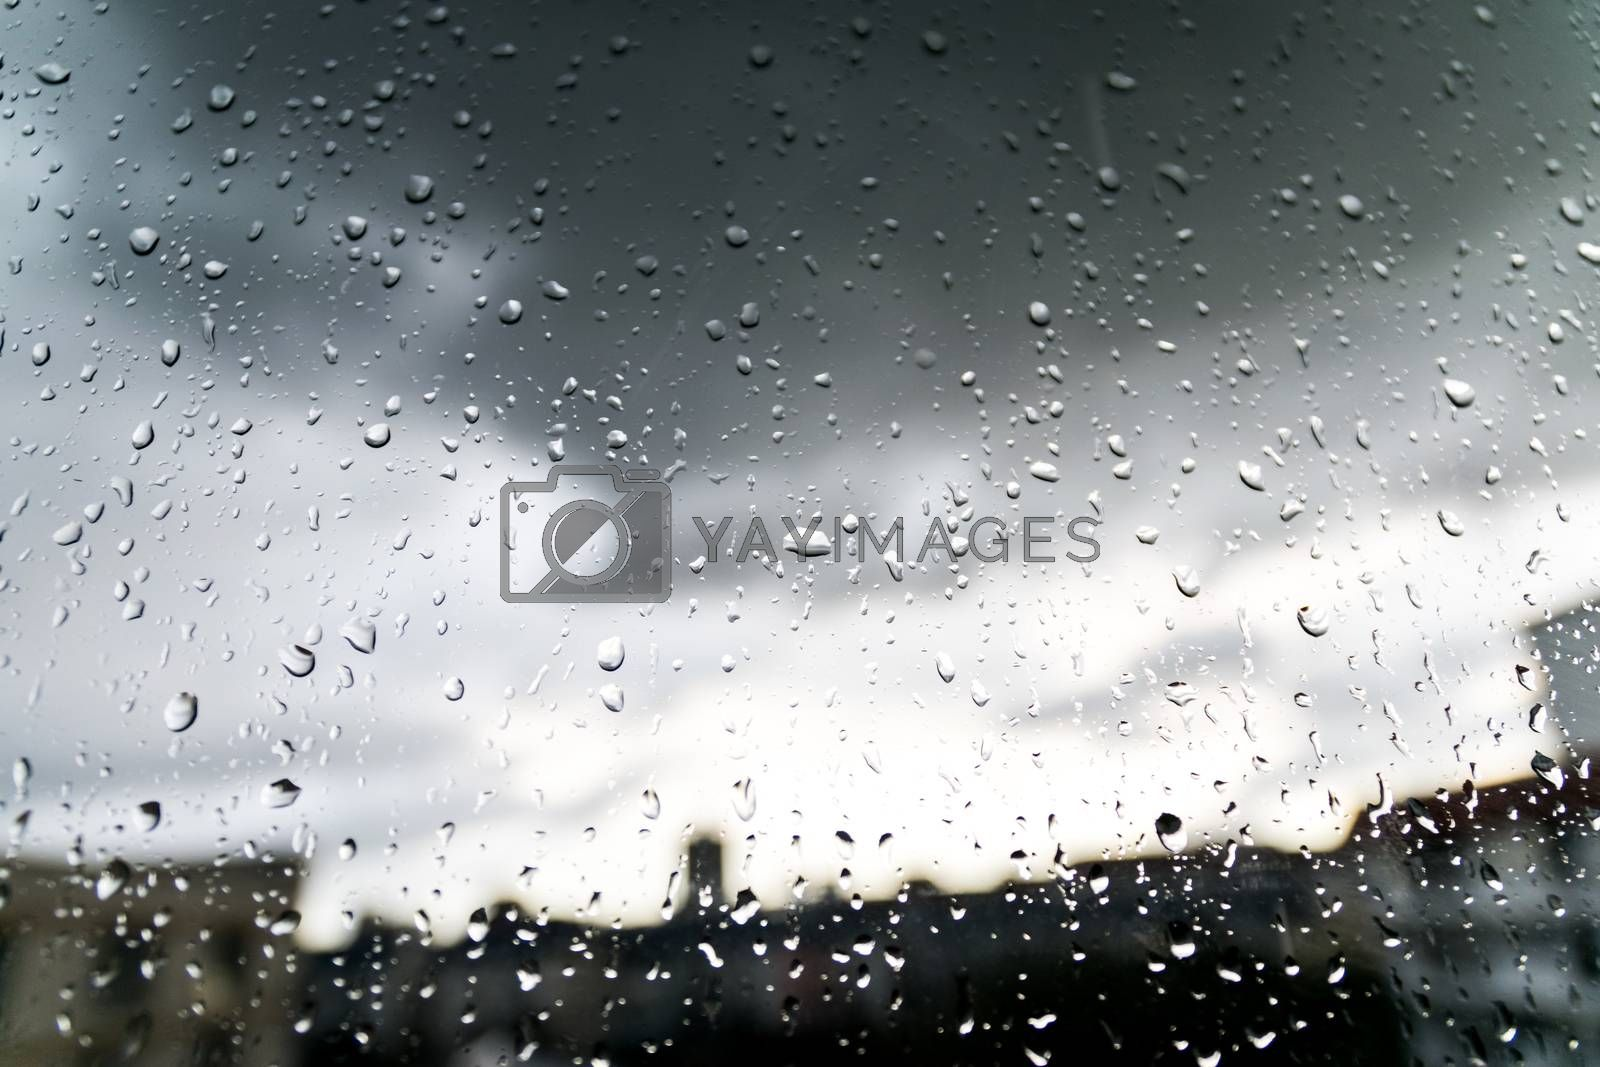 Beautiful nature wallpaper by Raining and dews drop on the glass.